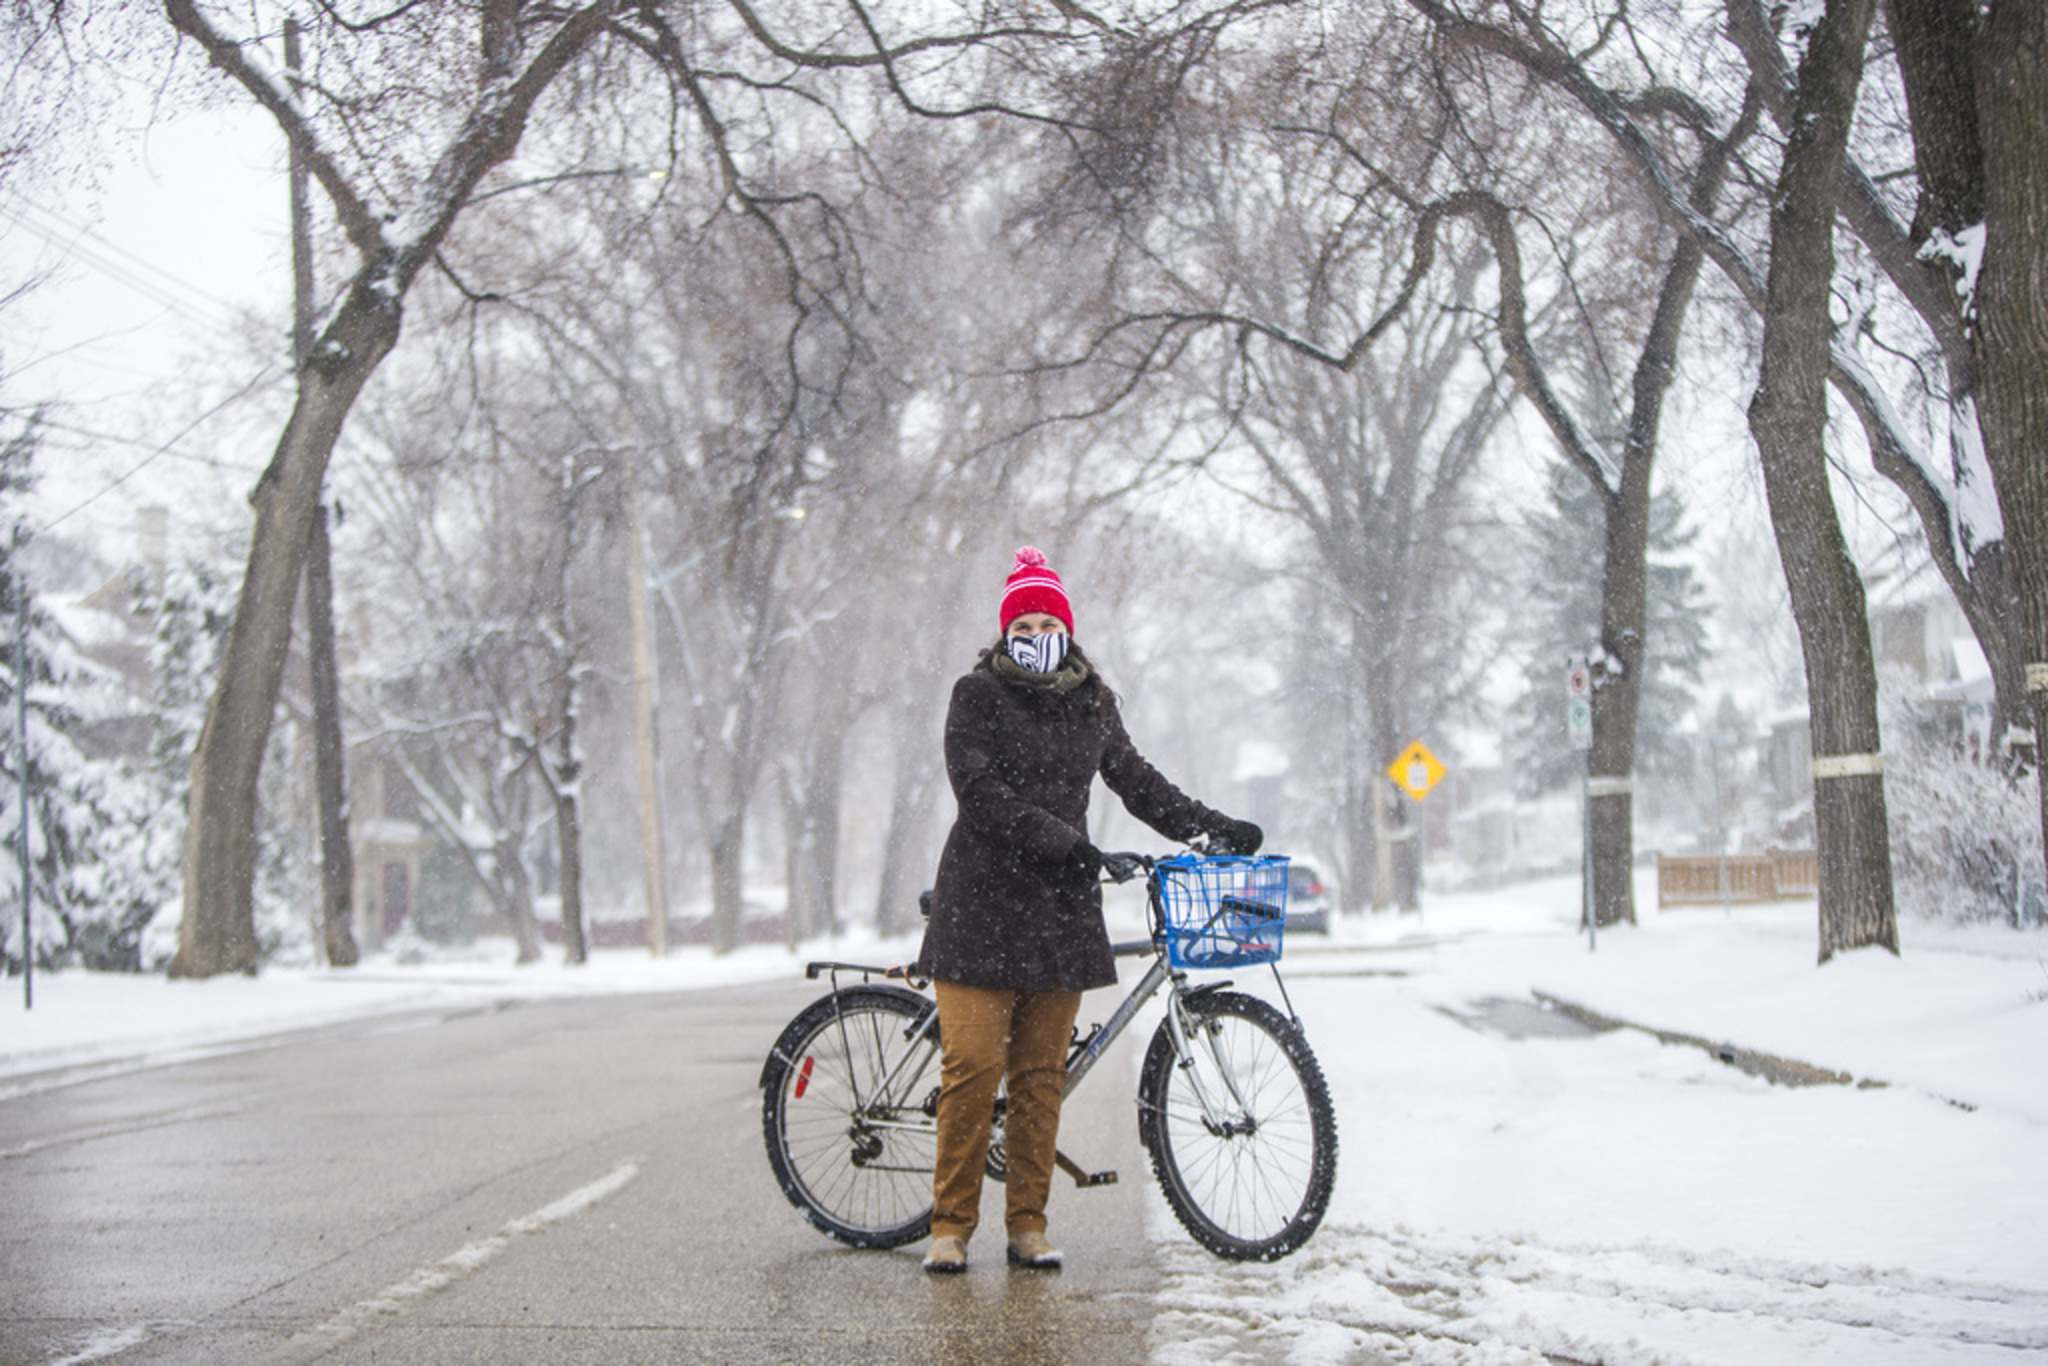 MIKAELA MACKENZIE / WINNIPEG FREE PRESS</p><p>Mel Marginet, co-ordinator with the Green Action Centre's Sustainable transportation team, feels the new call to pilot open streets just for cyclists, and not pedestrians, ignores the need for pedestrians to have safe travel space and is a disappointment after both cyclists and pedestrians used the steets last year.</p>